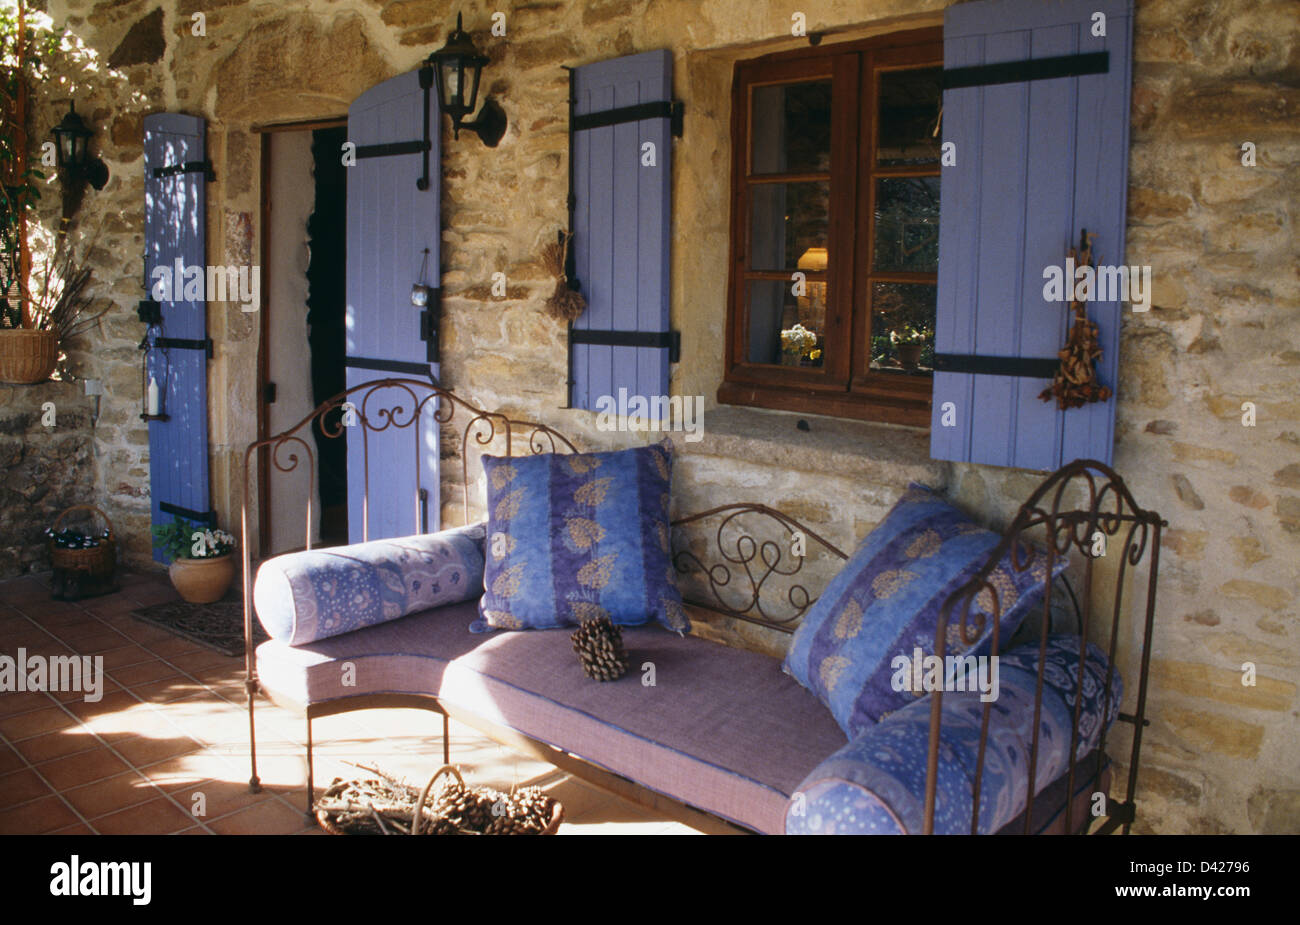 Blue Cushions On Wroughtiron Daybed Below Window With Blue - French country blue